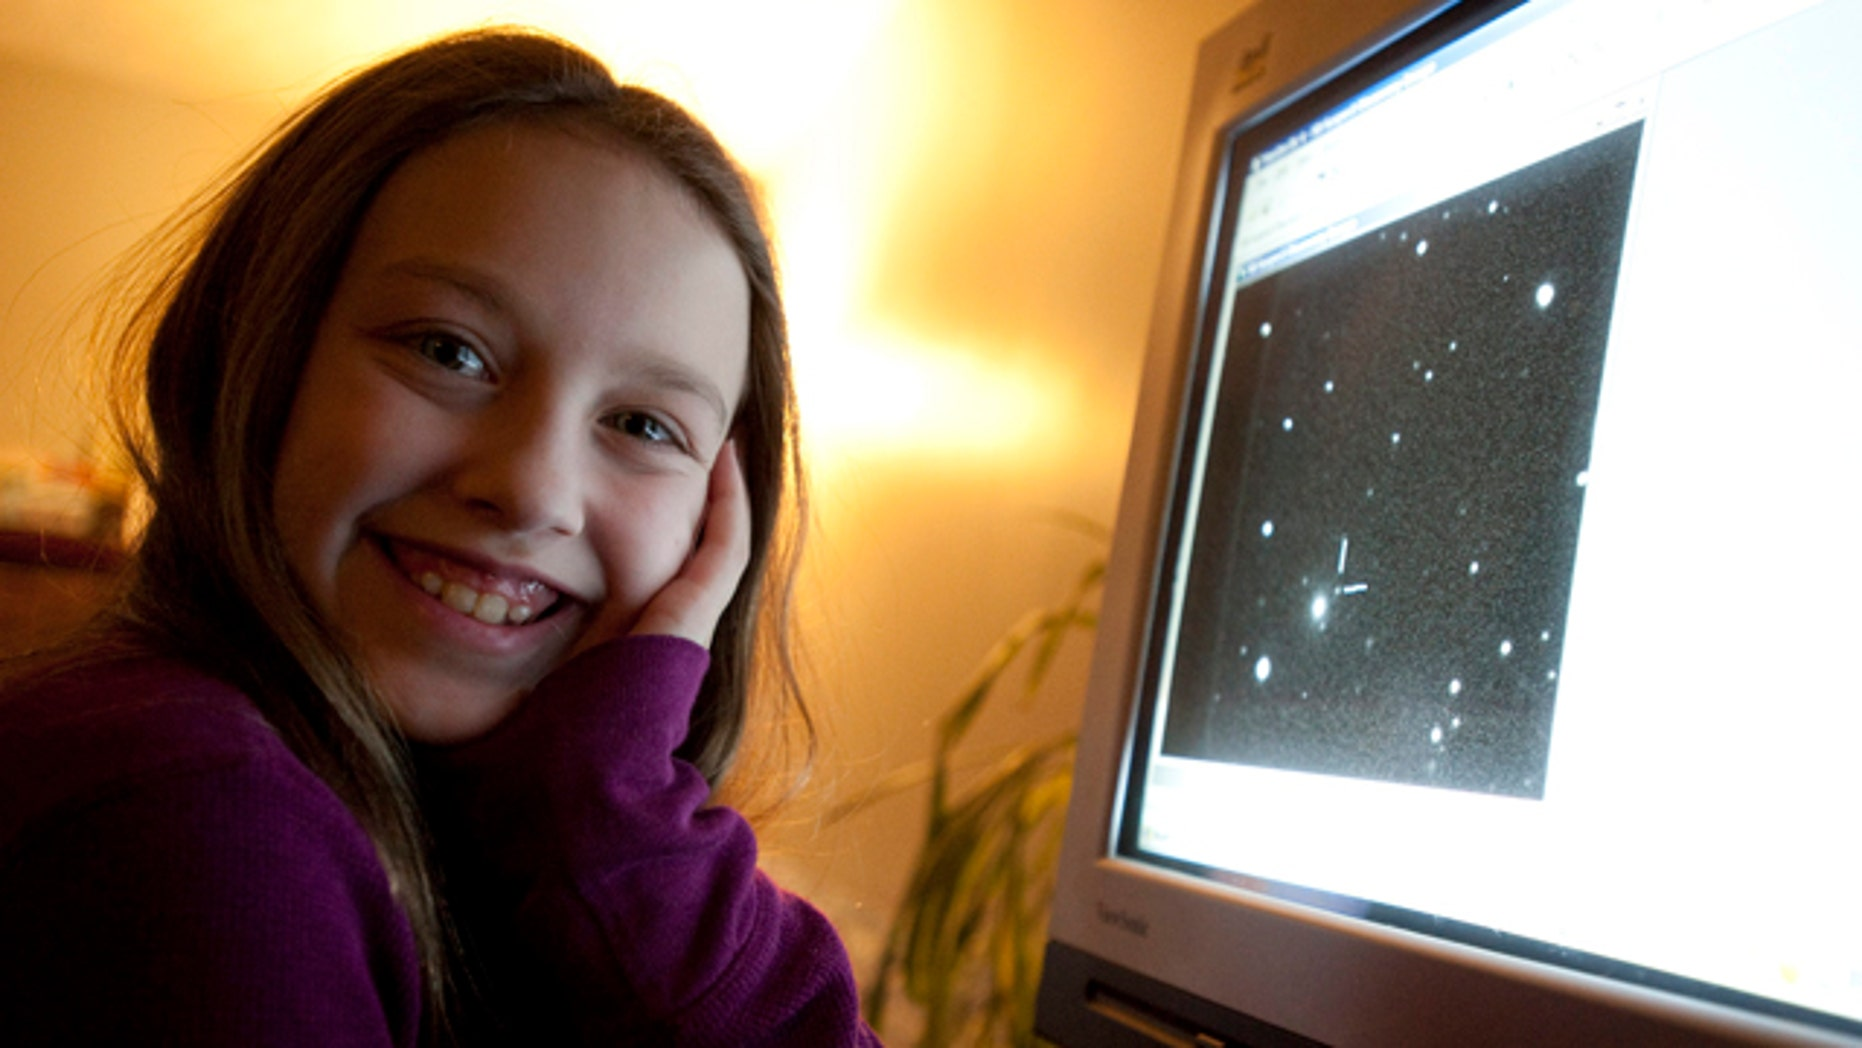 Ten-year-old Kathryn Gray sits next to a computer at the family's home in Birdton, New Brunswick, Canada, a suburb of Fredericton, on Monday, Jan. 3, 2011. On the computer monitor is an image in which she discovered a supernova. The Royal Astronomical Society of Canada says she made the discovery on the weekend under the watch of two other astronomers.